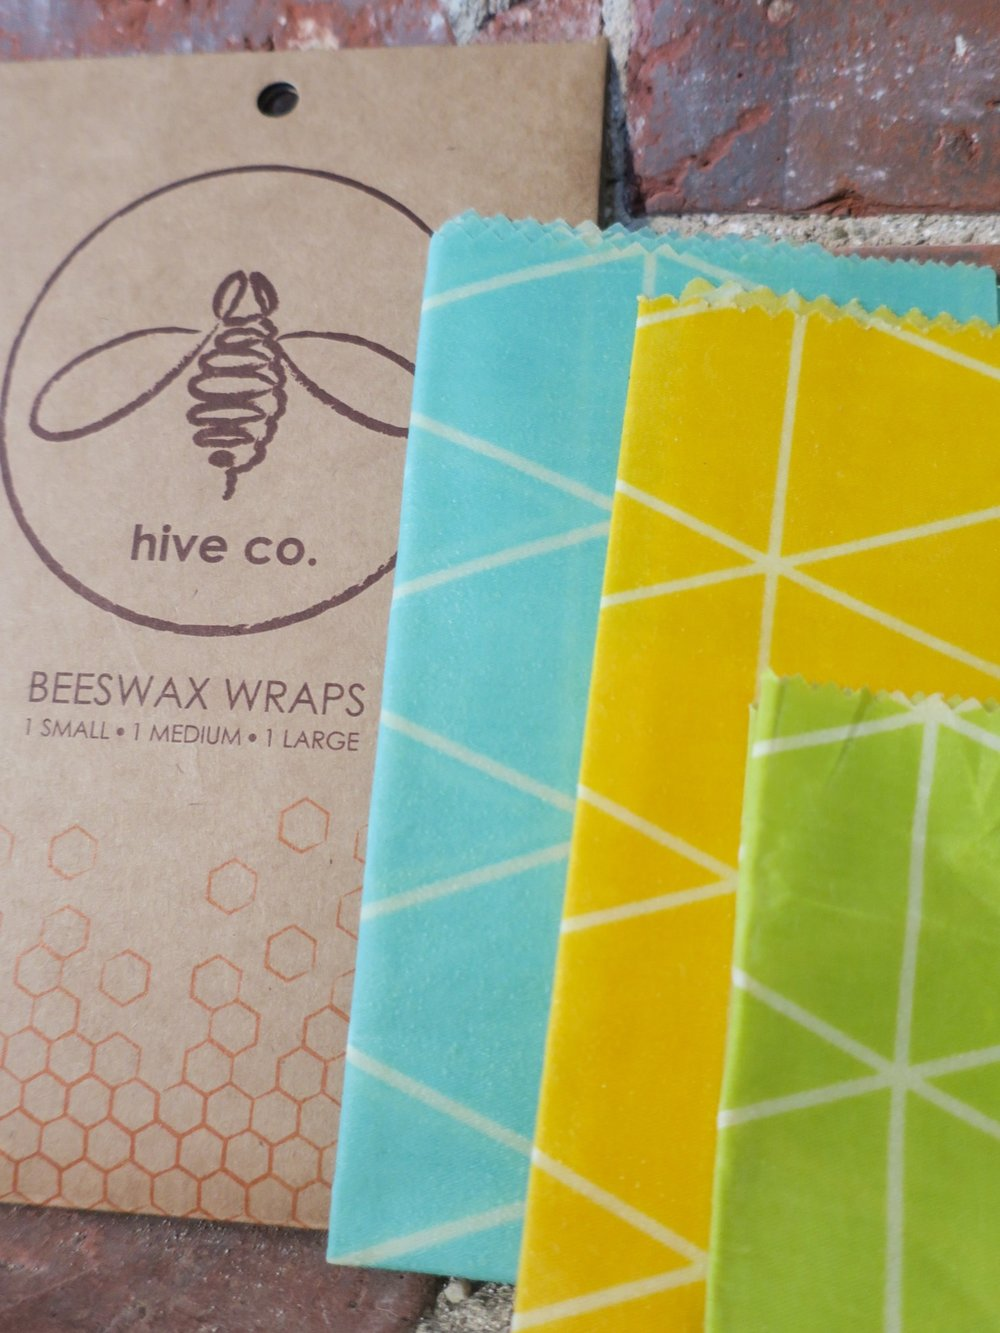 beeswax wrap food storage.JPEG